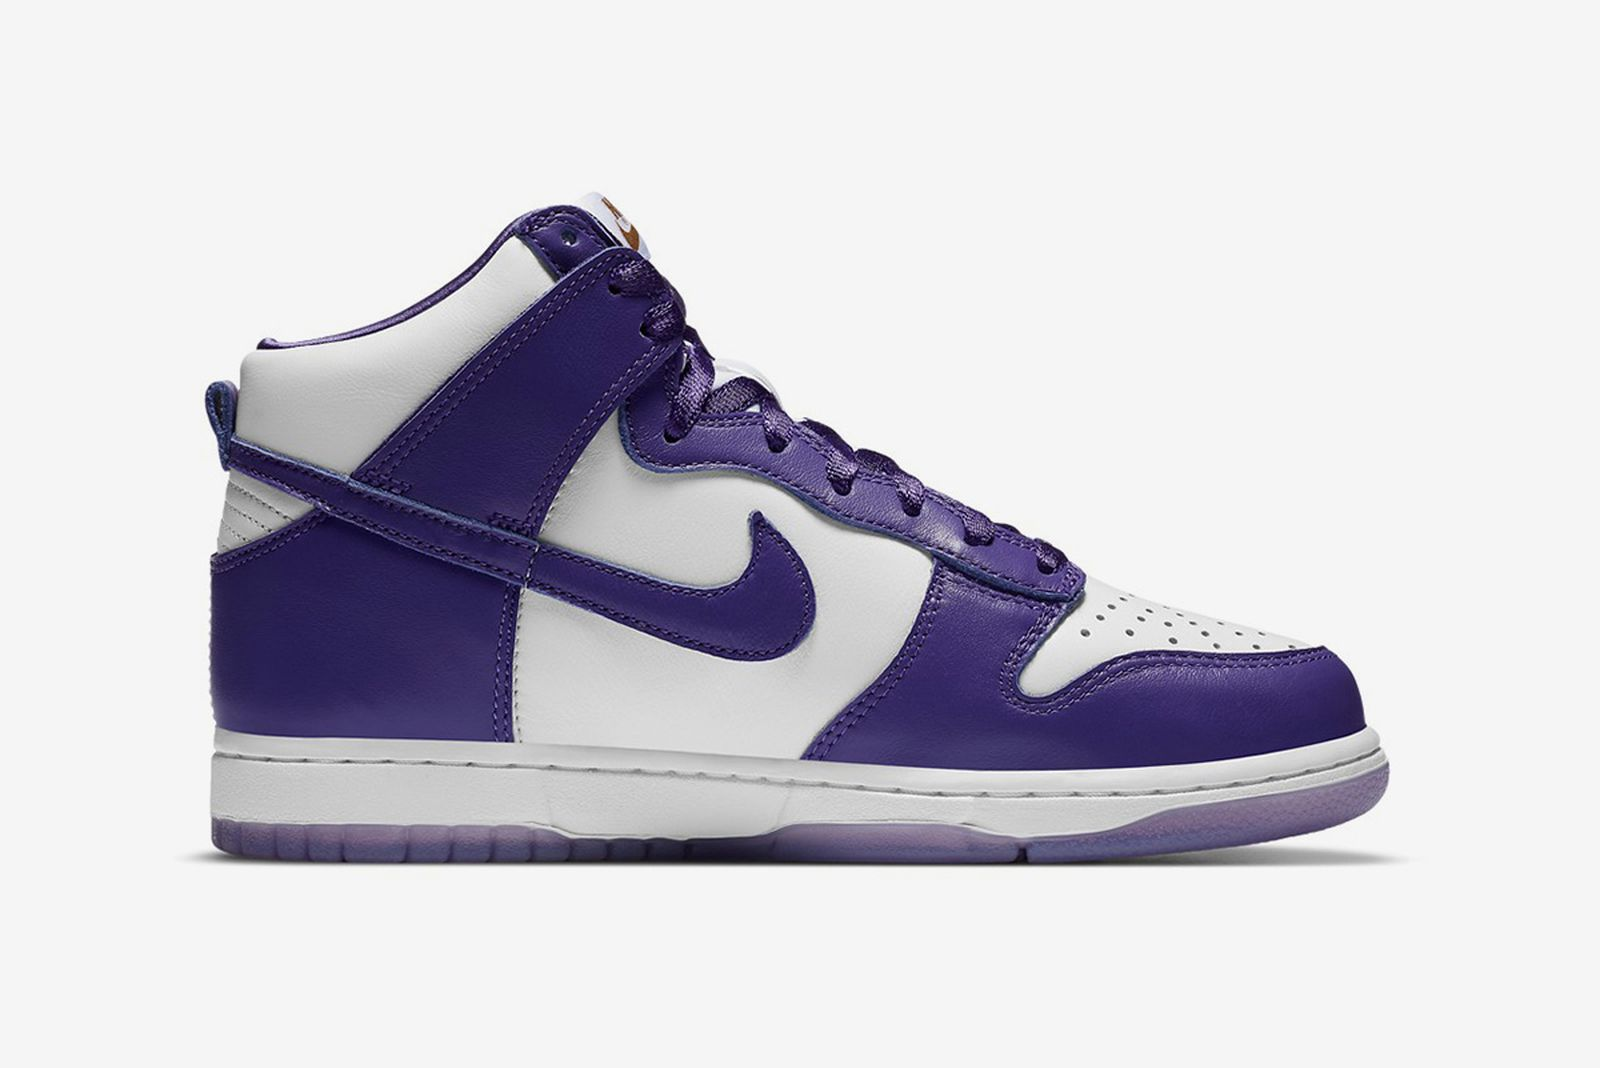 nike-dunk-high-varsity-purple-release-date-price-02